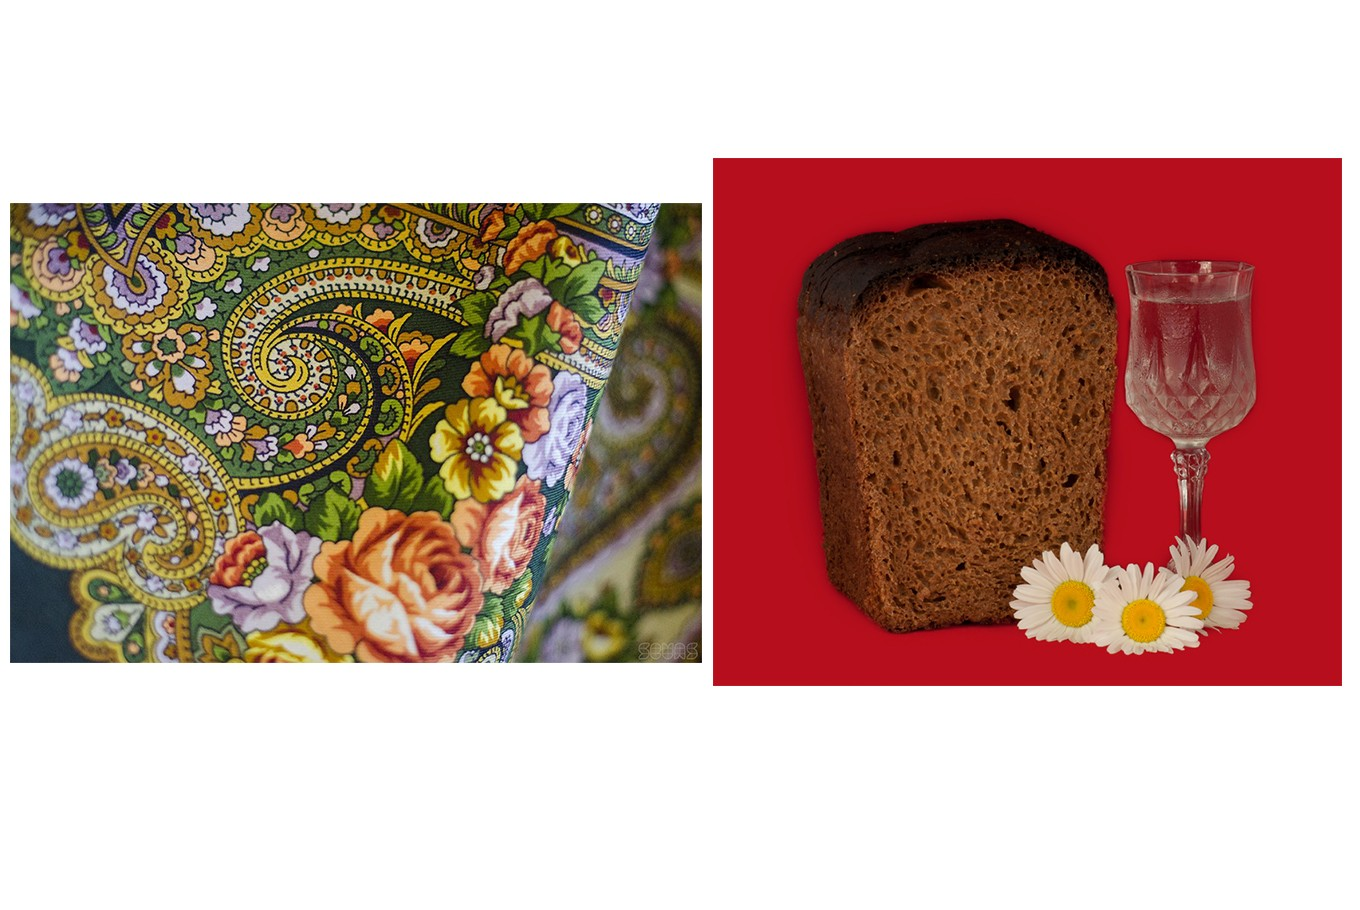 RUSSIA - Eat: I really miss Russian rye bread. Every time I travel from Moscow, I try to bring it. In Indonesia there is also a broad variety of bakeries. However, I have never seen such delicious rye bread as in Moscow abroad. You can find it in every grocery store in Moscow–or any other city. <br><br> Buy: Russia is very famous for its Pavlo-Posad shawls. They are decorated with traditional Russian patterns and look very beautiful. Our women like to wear them either on shoulders in summer or to cover their heads in winter. Or you can bring an Orenburg shawl, made of a combination of a knitted lace textile and goat wool. (Mikhail Y.Galuzin, Ambassador of Russia)